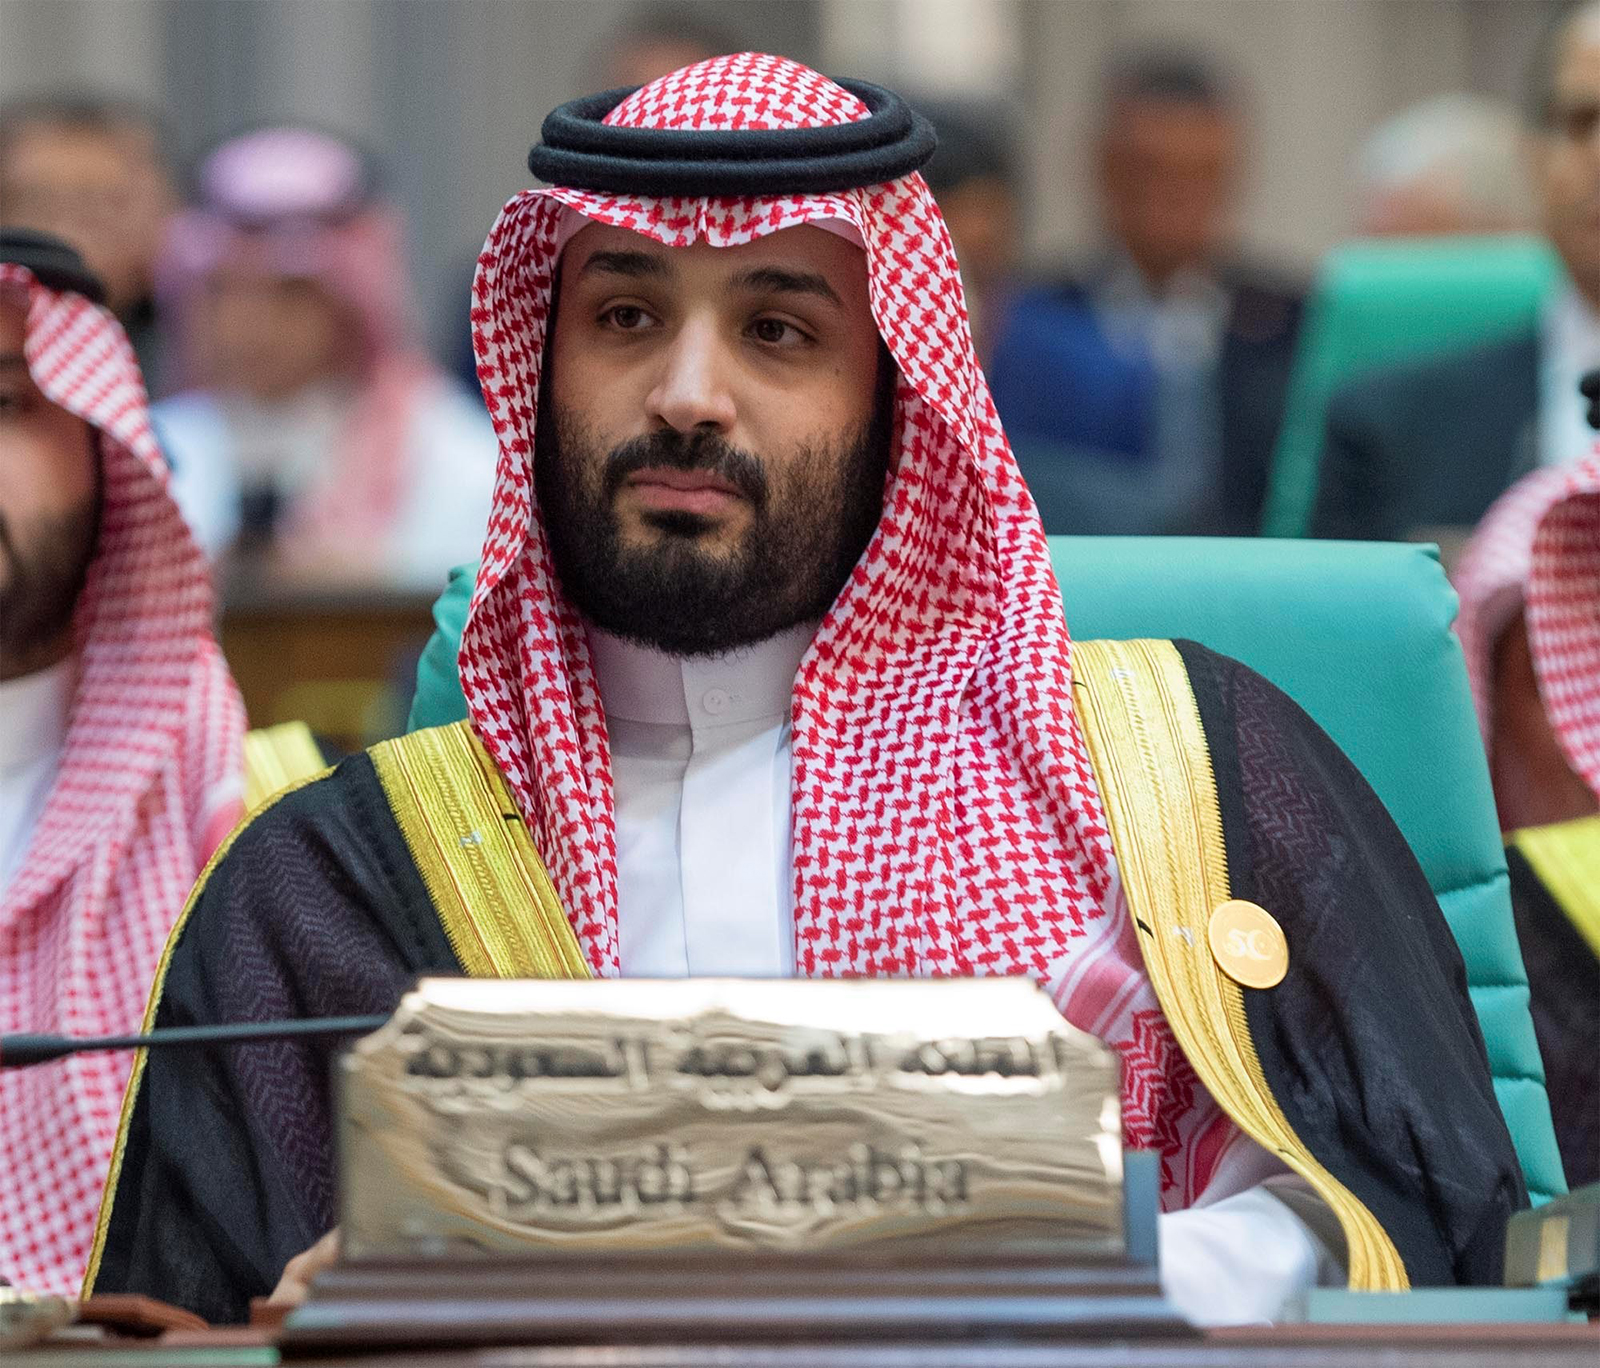 Reporters Without Borders files criminal complaint against Saudi crown prince